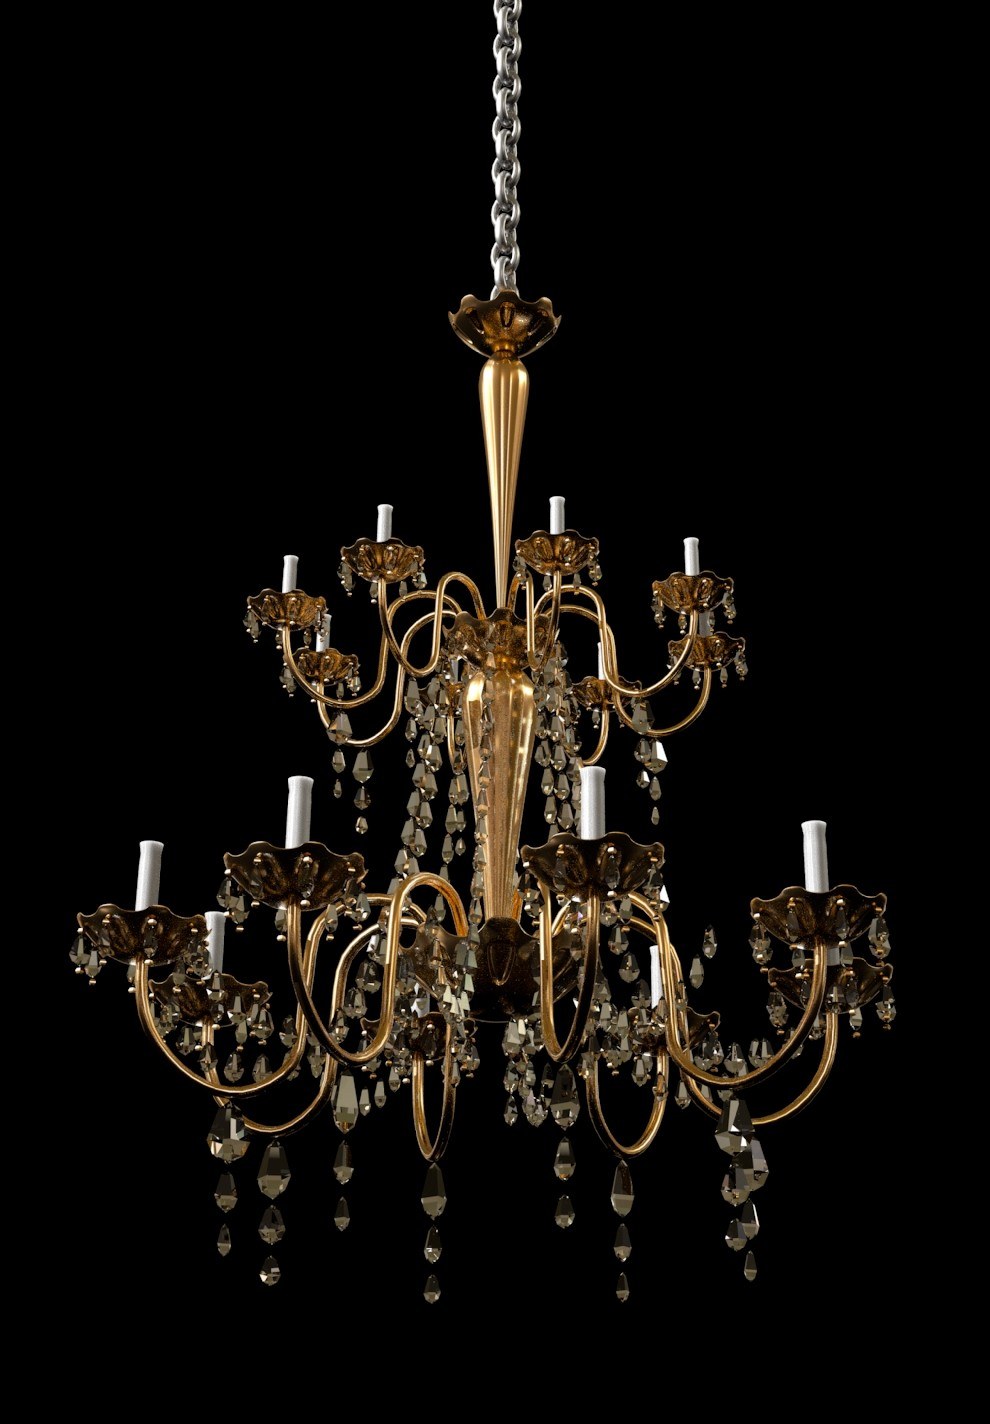 Chandelier made for this particular scene. This was mostly speed modeled so the details may be rough but were intended for a far away object.